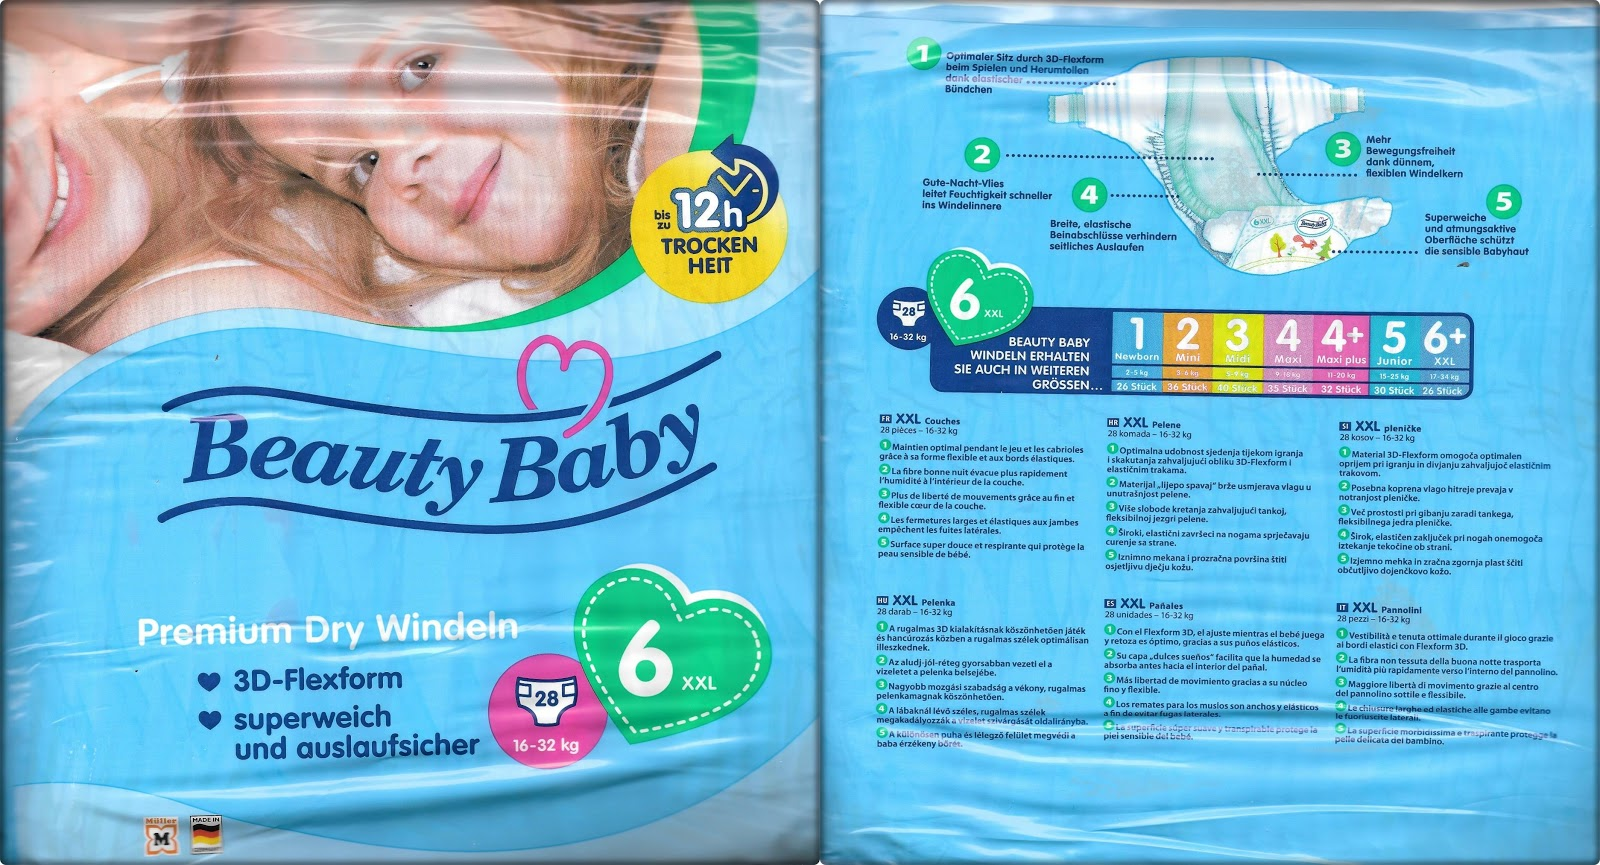 Windeln Größe 7 Jennifers Windeltest Produkttest Beauty Baby Premium Dry